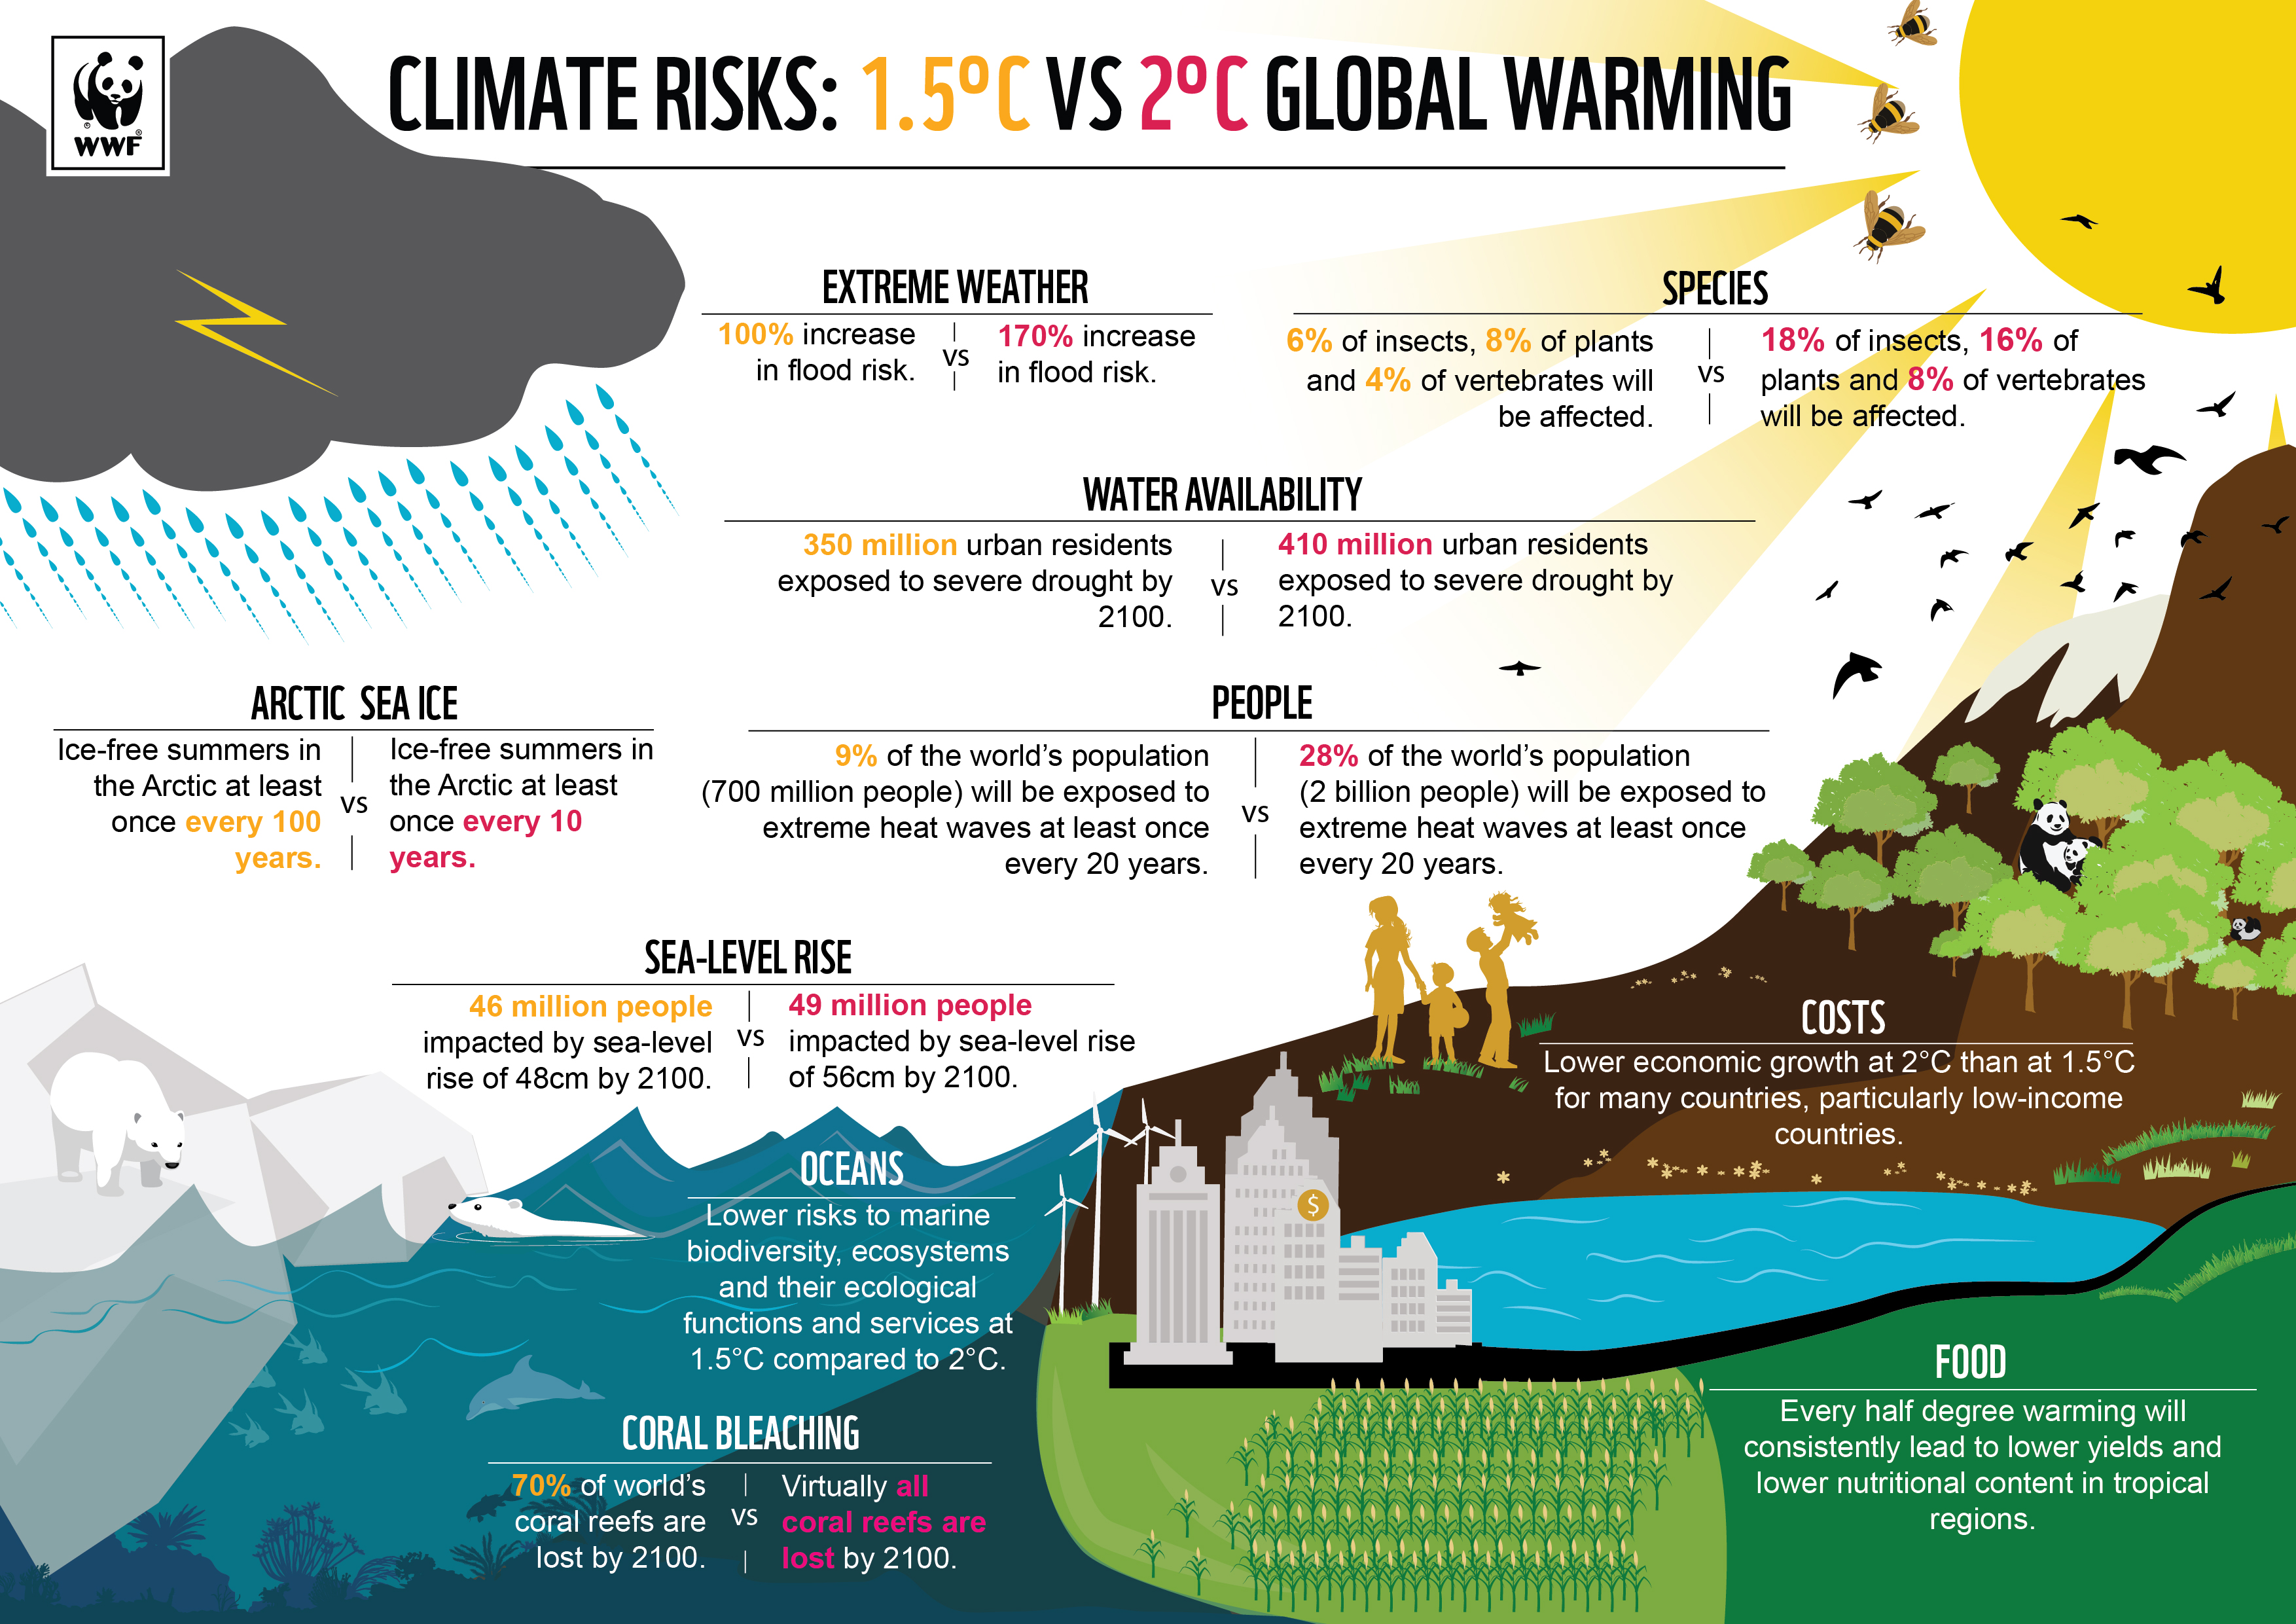 climate risks 1.5 degree vs 2 degree global warming climate change facts infographic